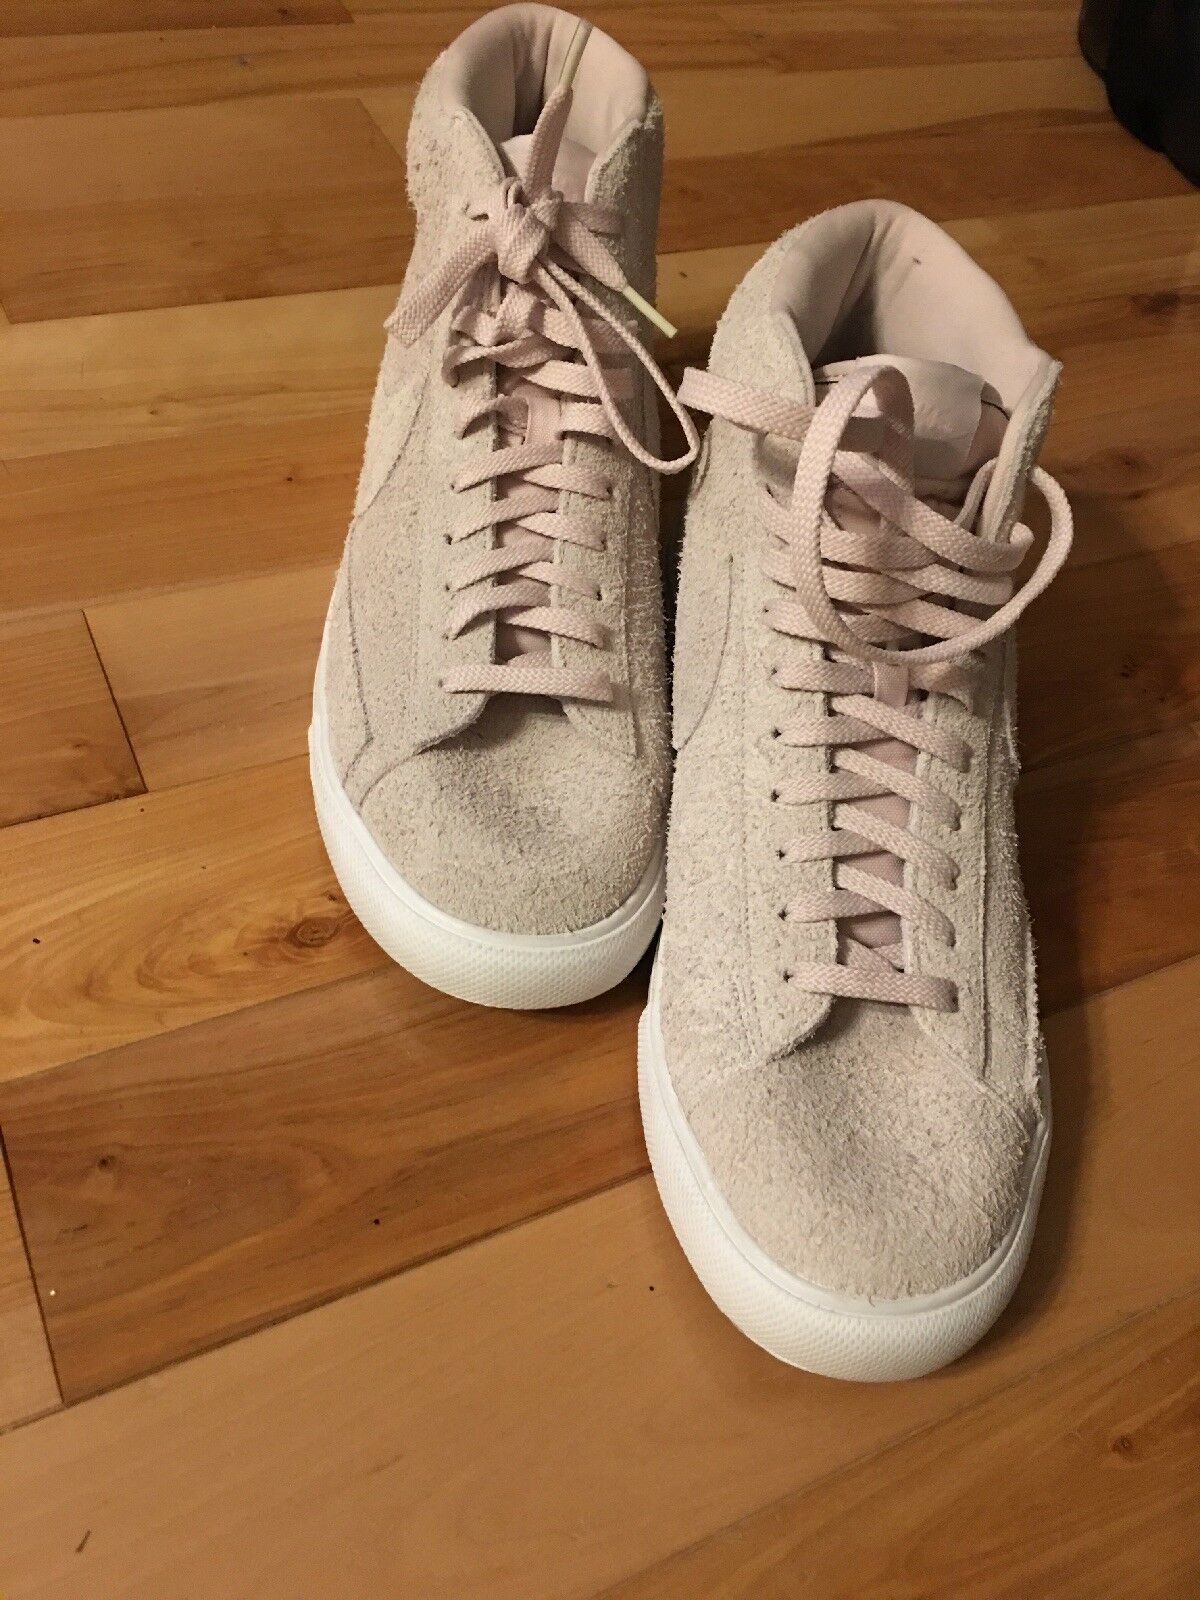 Rare Vintage Nike Hightop Suede Rare Color Dusty Rose Size 12 Hard To Find